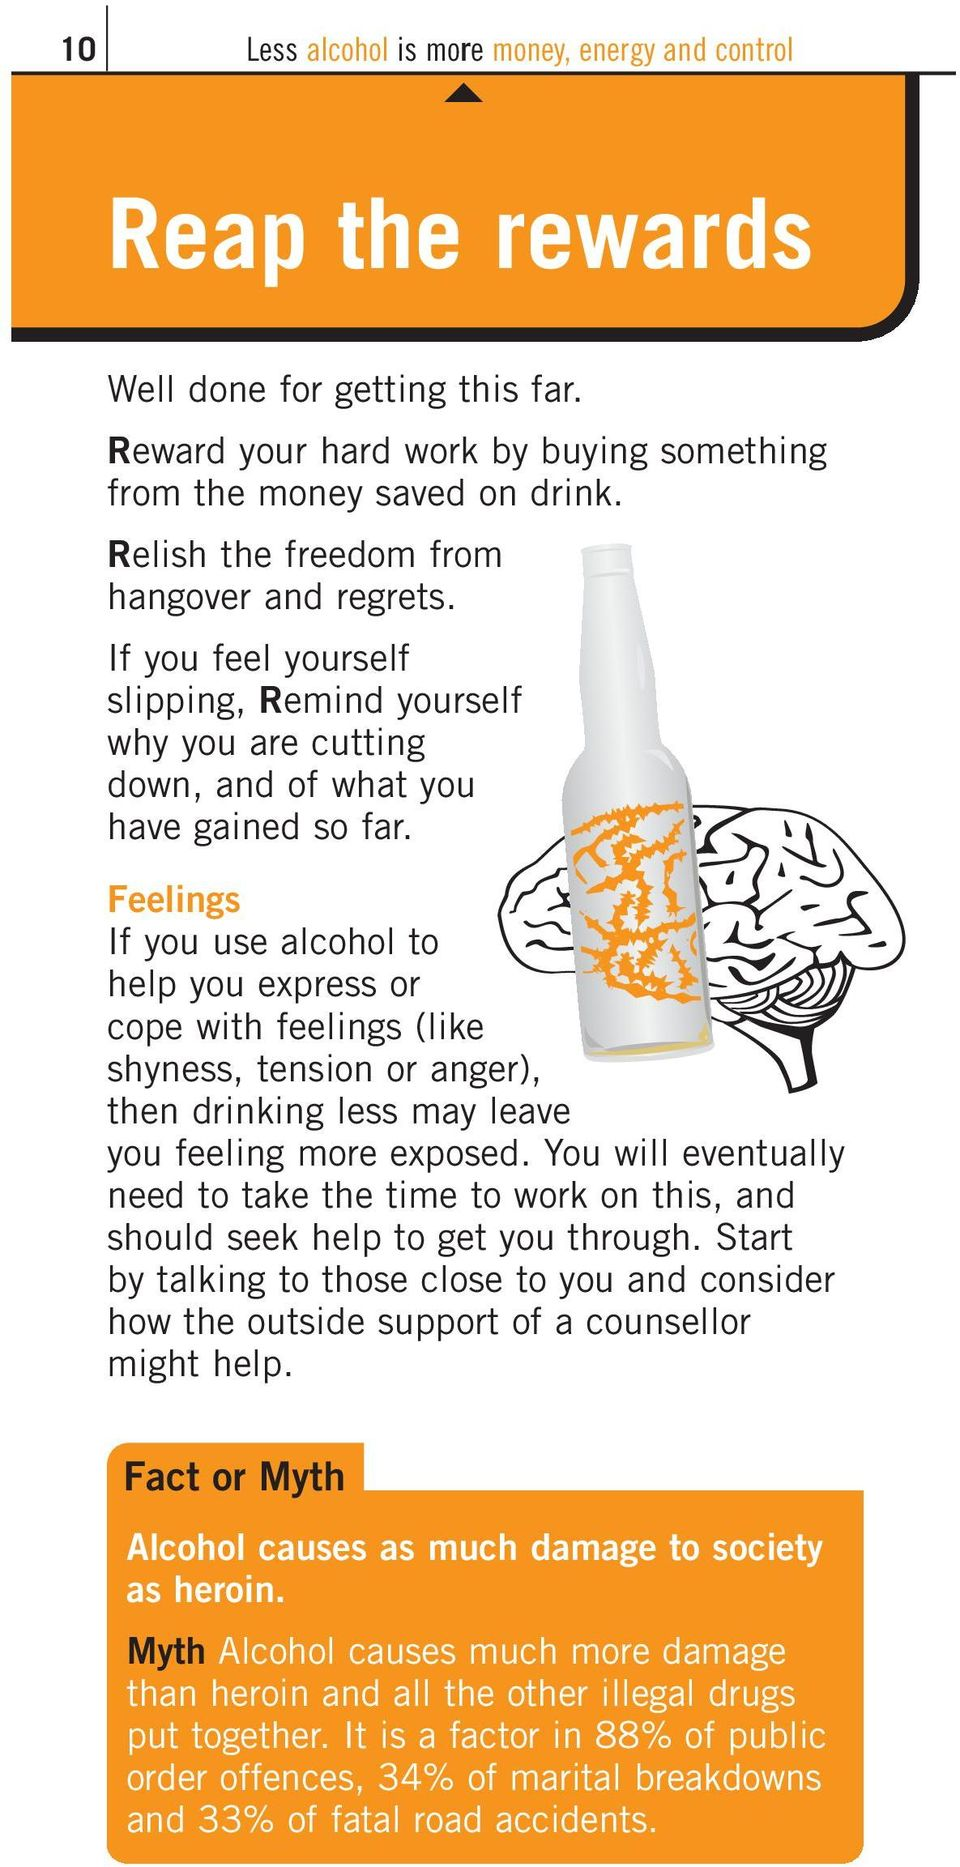 Feelings If you use alcohol to help you express or cope with feelings (like shyness, tension or anger), then drinking less may leave you feeling more exposed.